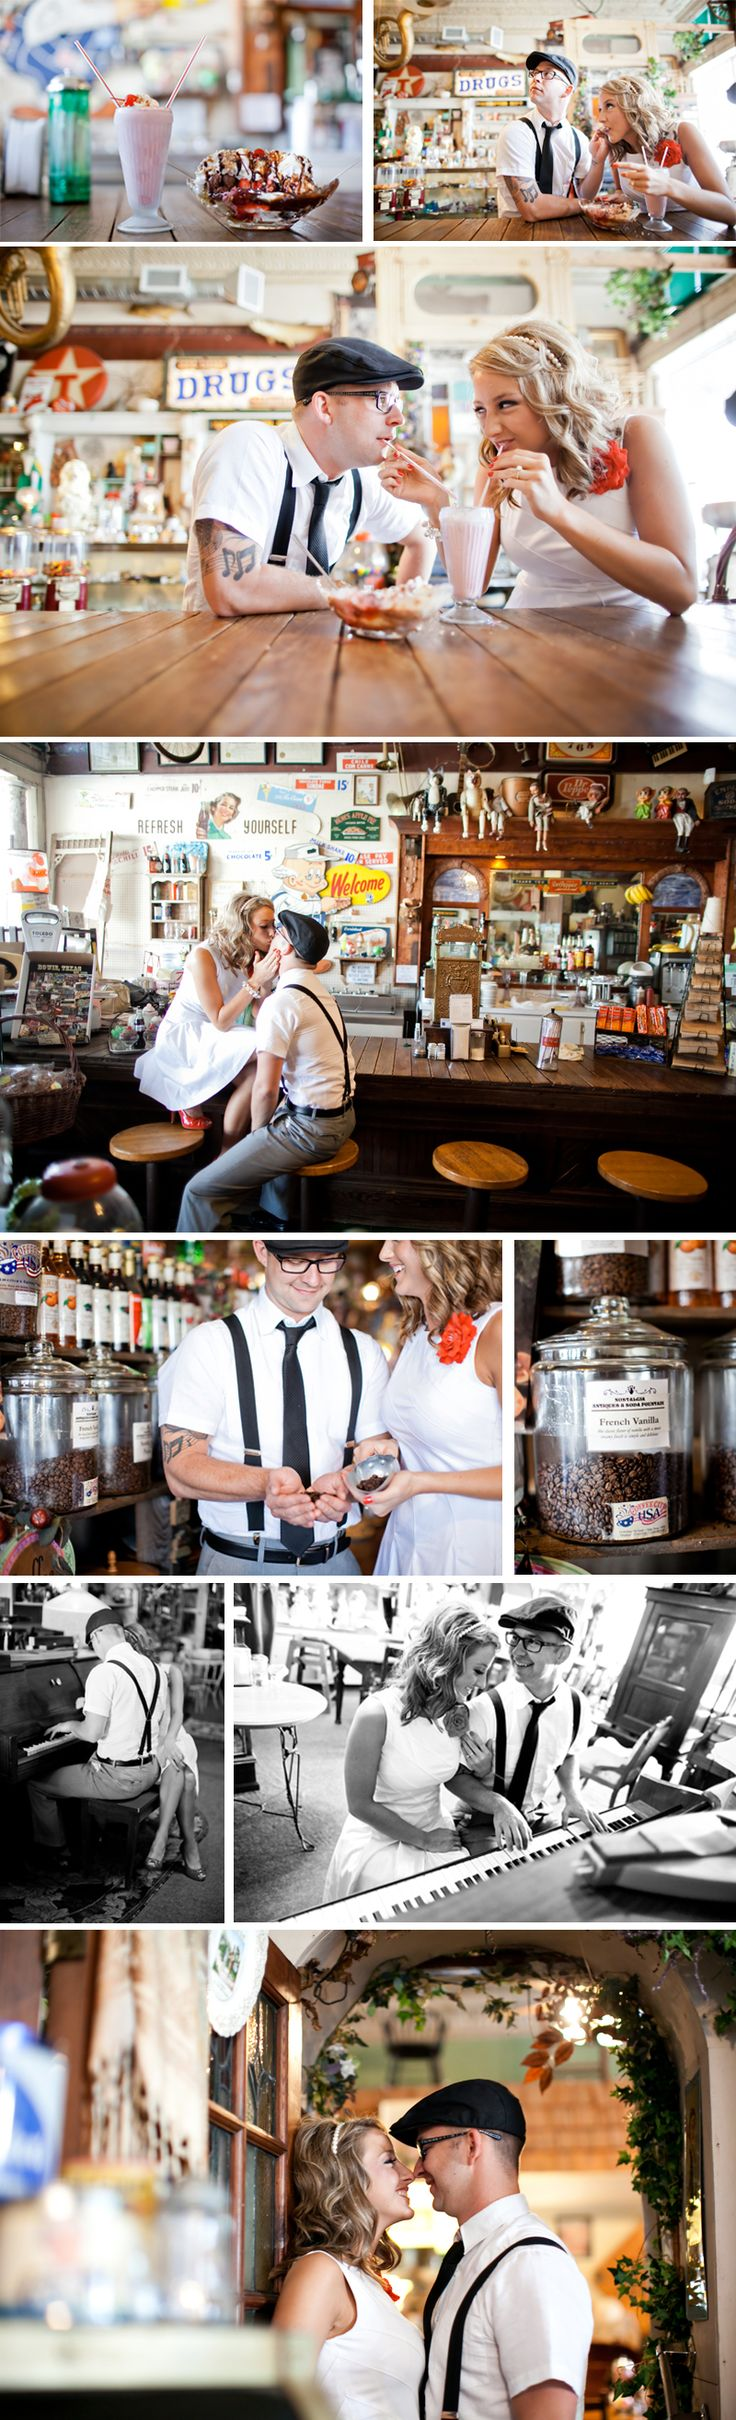 """I hope to achieve the same """"vintage"""" feel on my e-shoot! http://www.meeganweaverphotographyblog.com/2011/05/antique-vintage-engagement-pictures-lexieben/"""